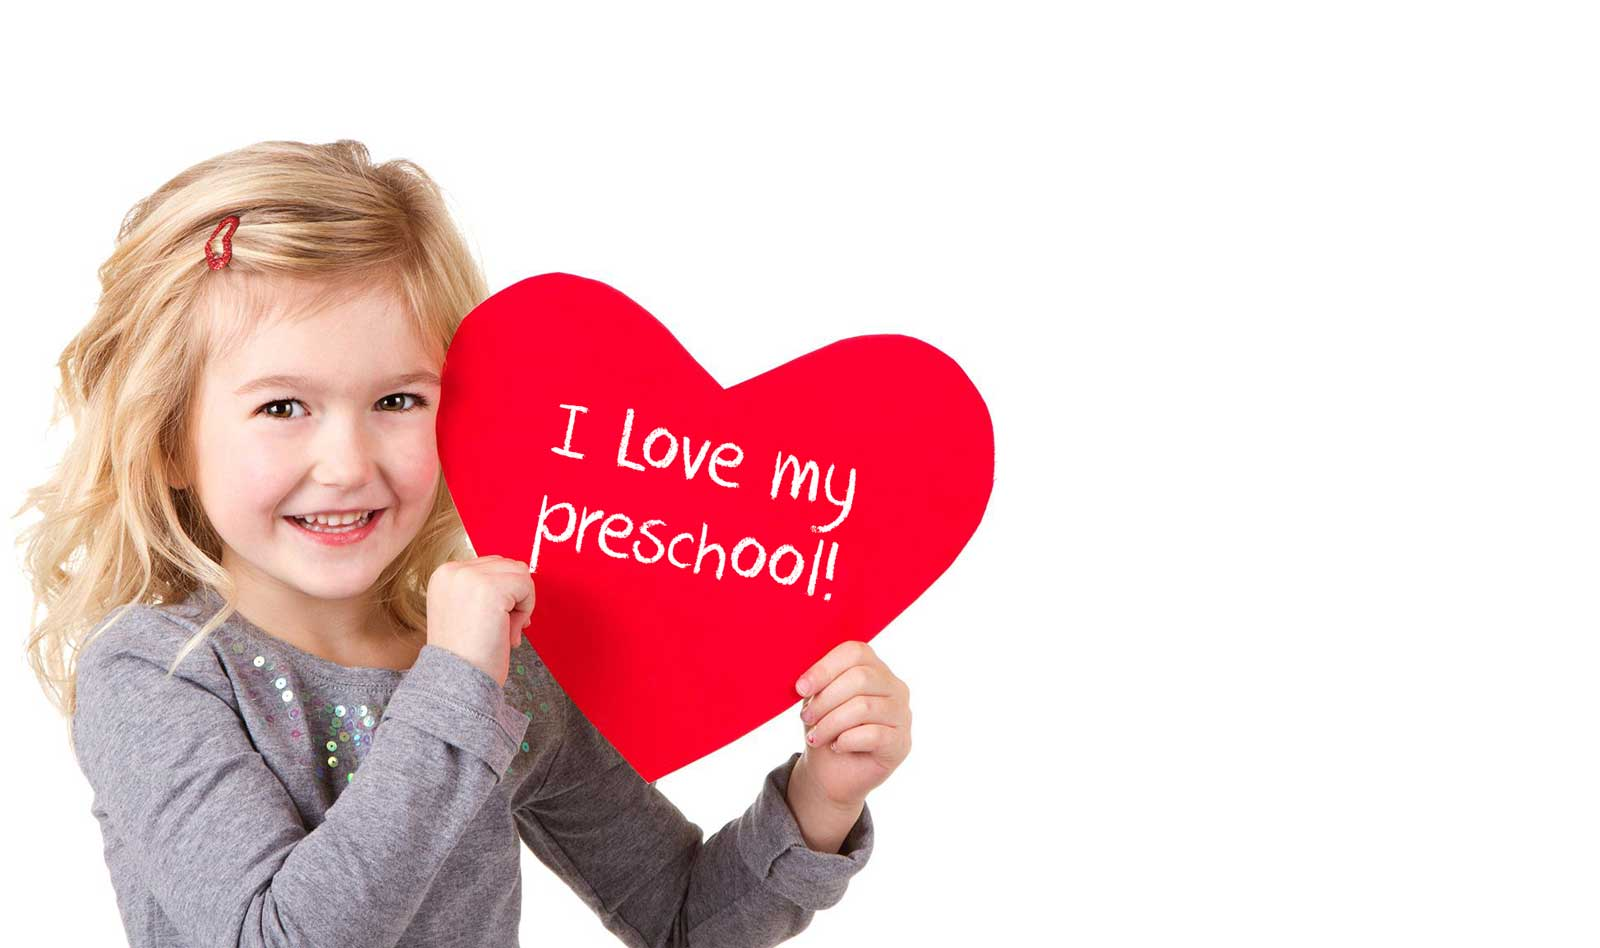 Preschool Gilbert Arizona